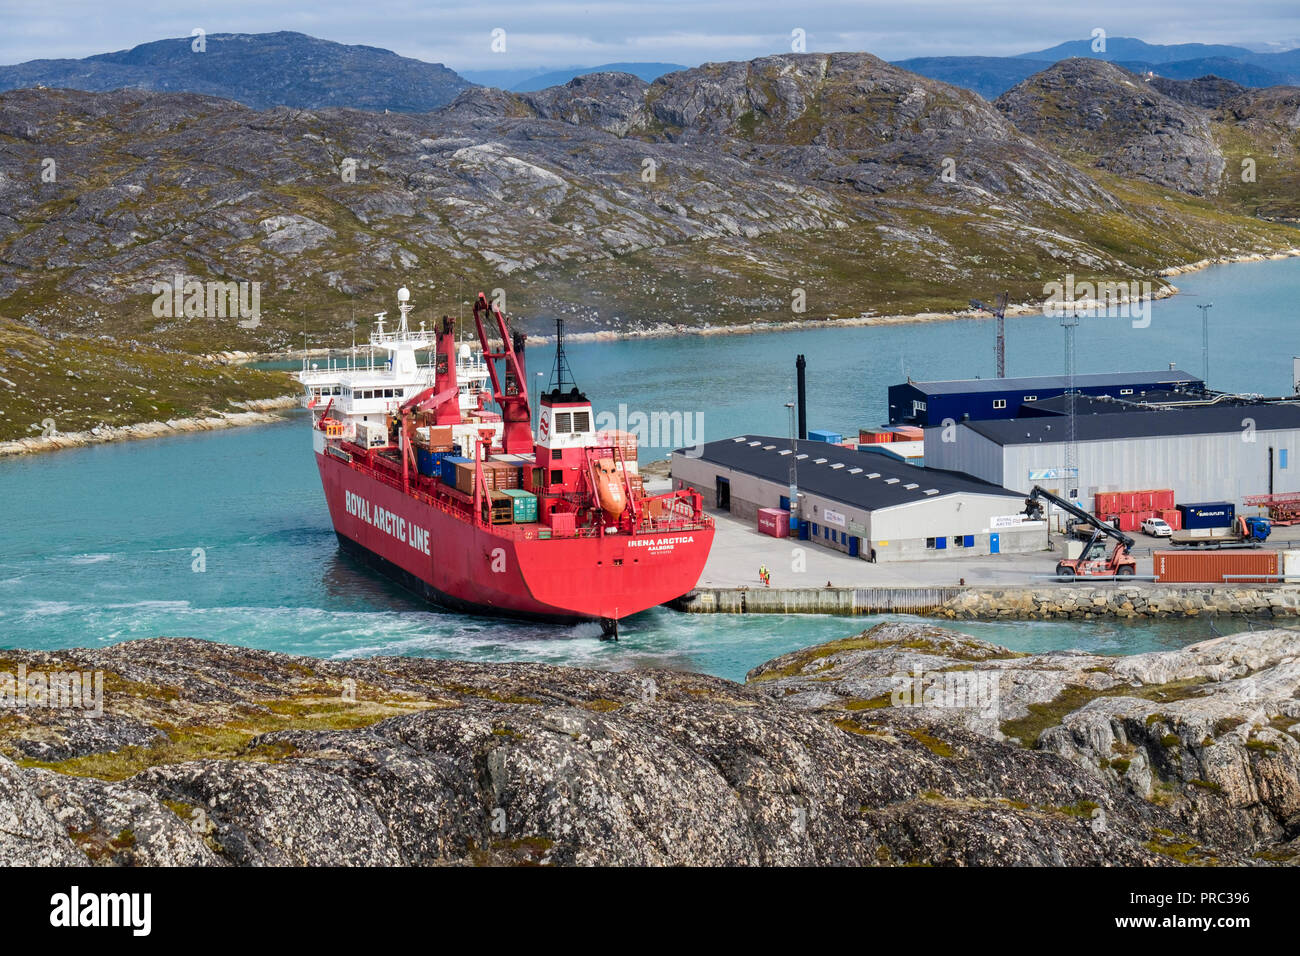 Royal Arctic Line container ship Irena Arctica (424 TEU) docked in port in fjord. Paamiut (Frederikshåb), Sermersooq, southwestern Greenland. Stock Photo